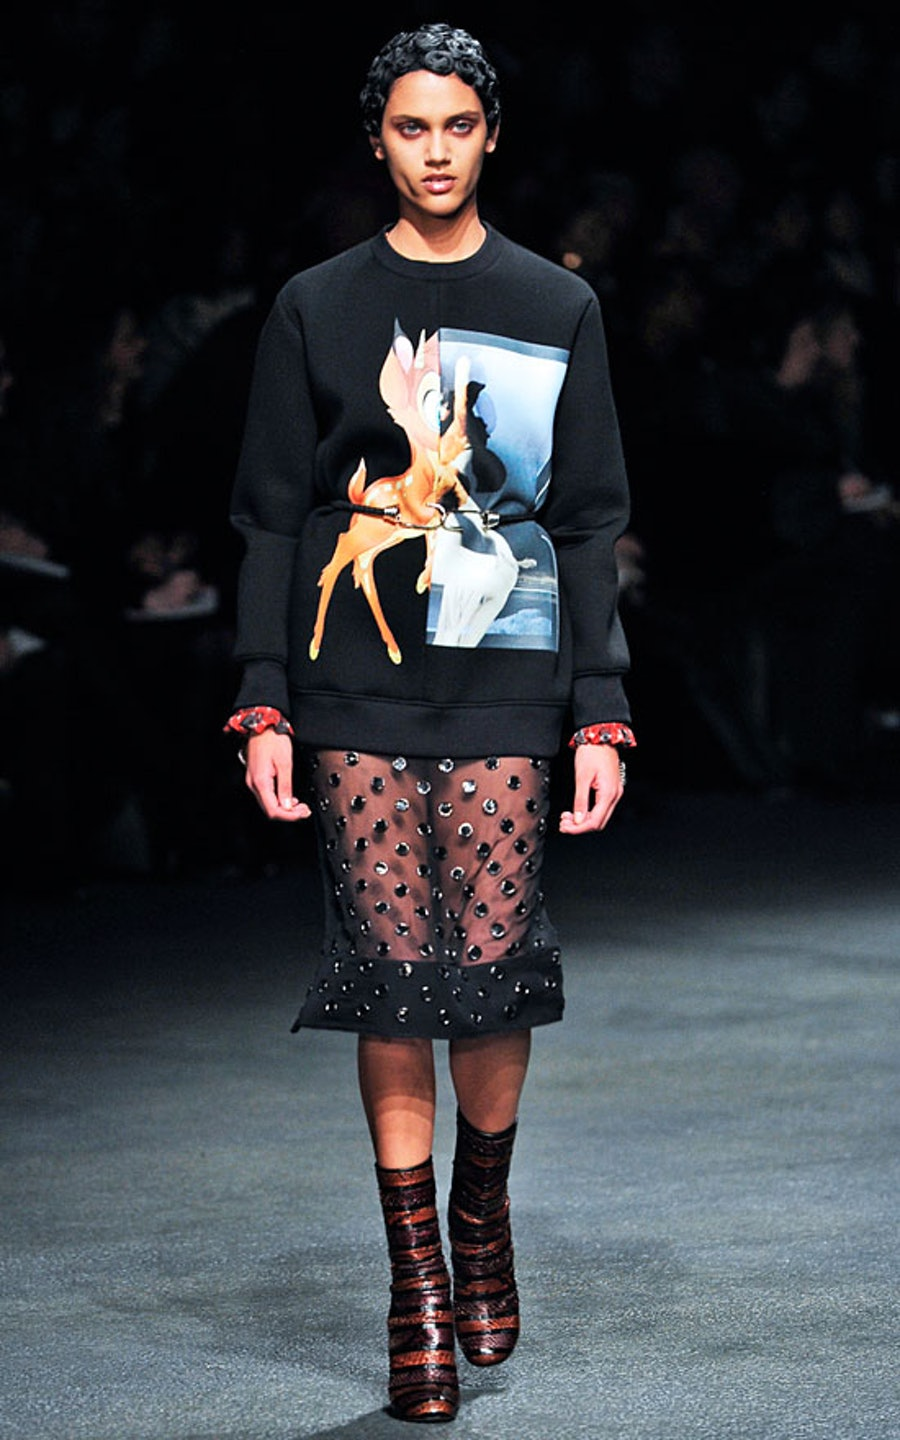 blog-givenchy-fall-2013-runway-look-01-01.jpg